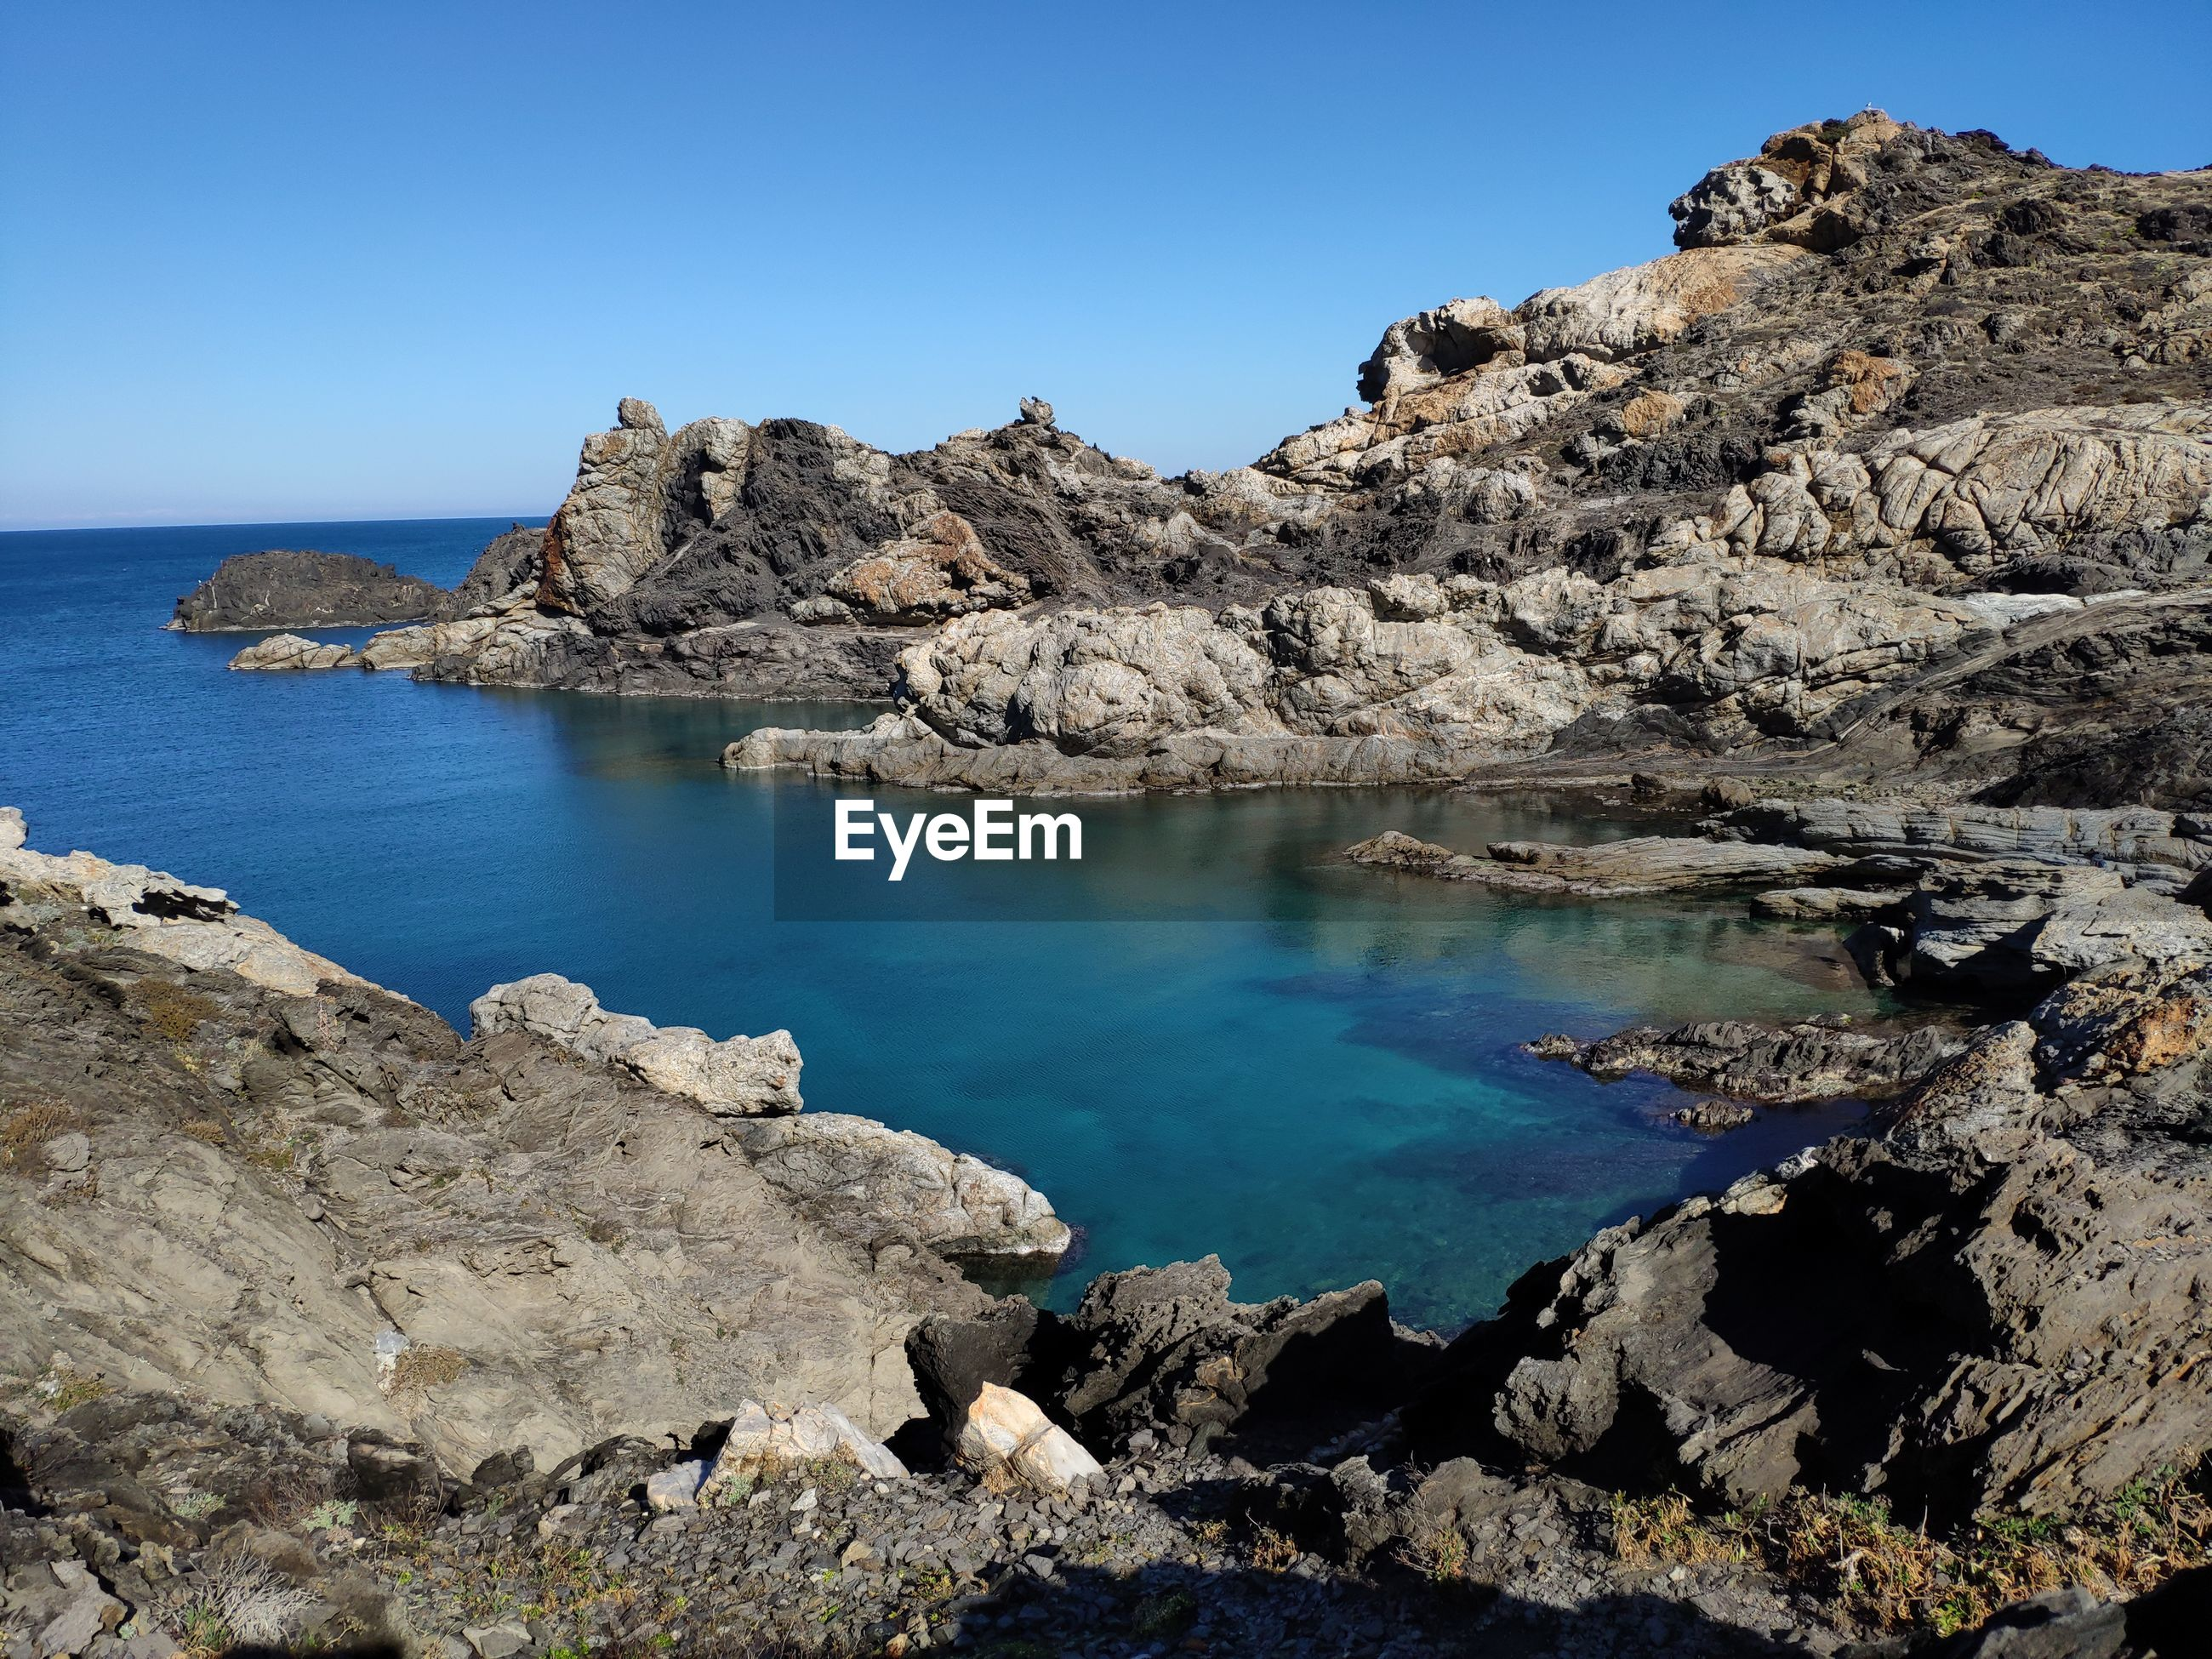 Scenic view of rocks in sea against clear blue sky